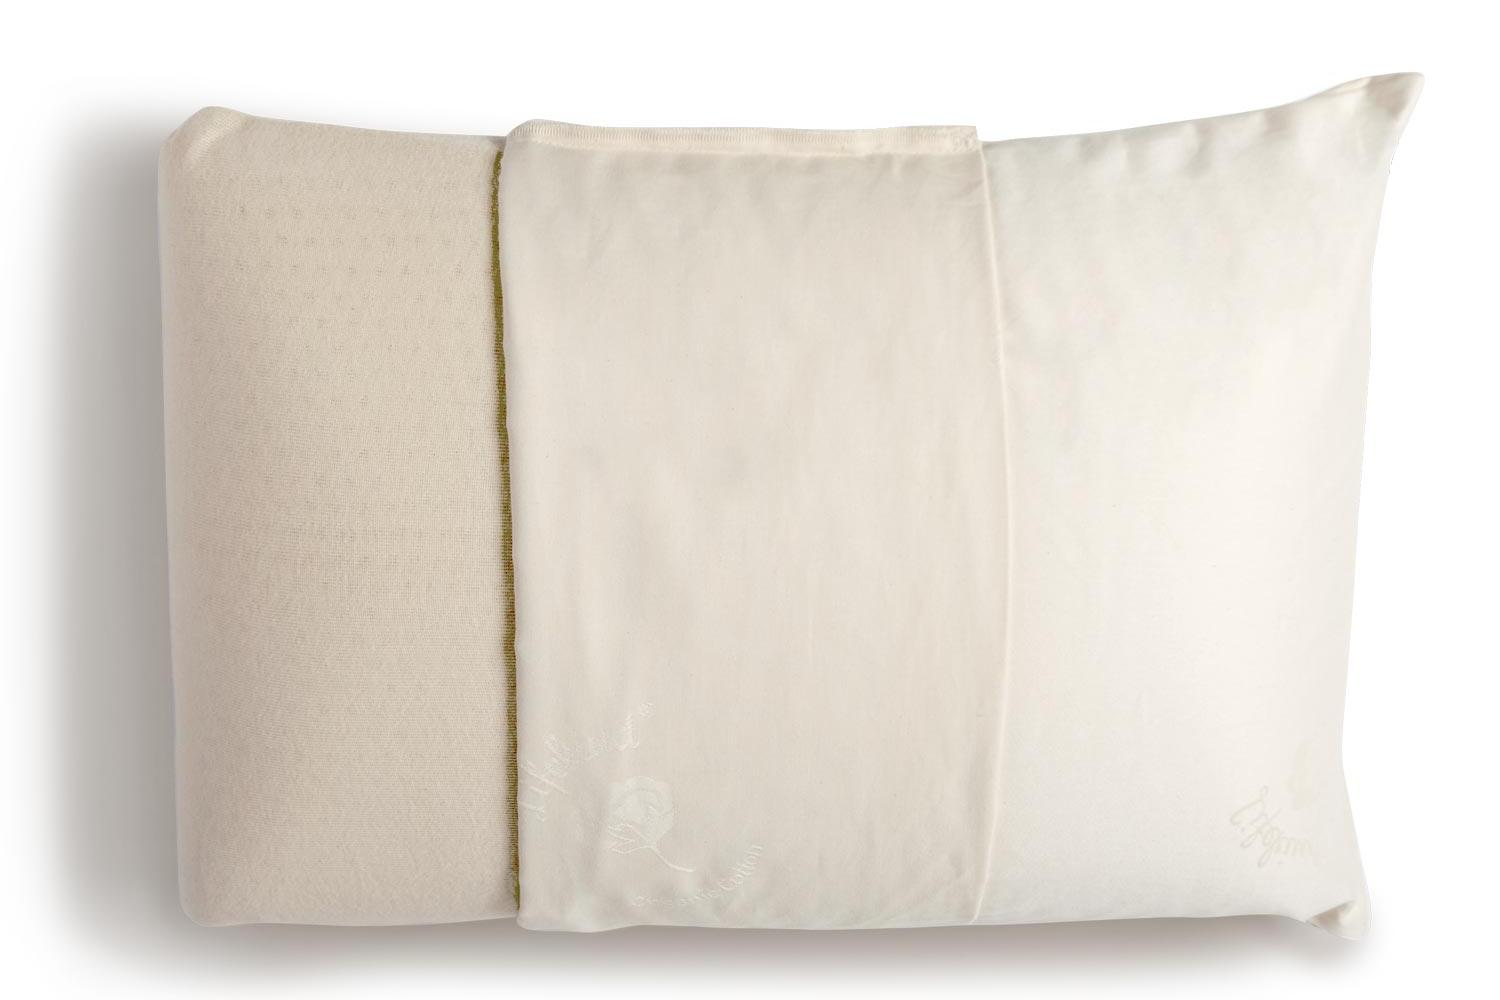 molded rubber pillow